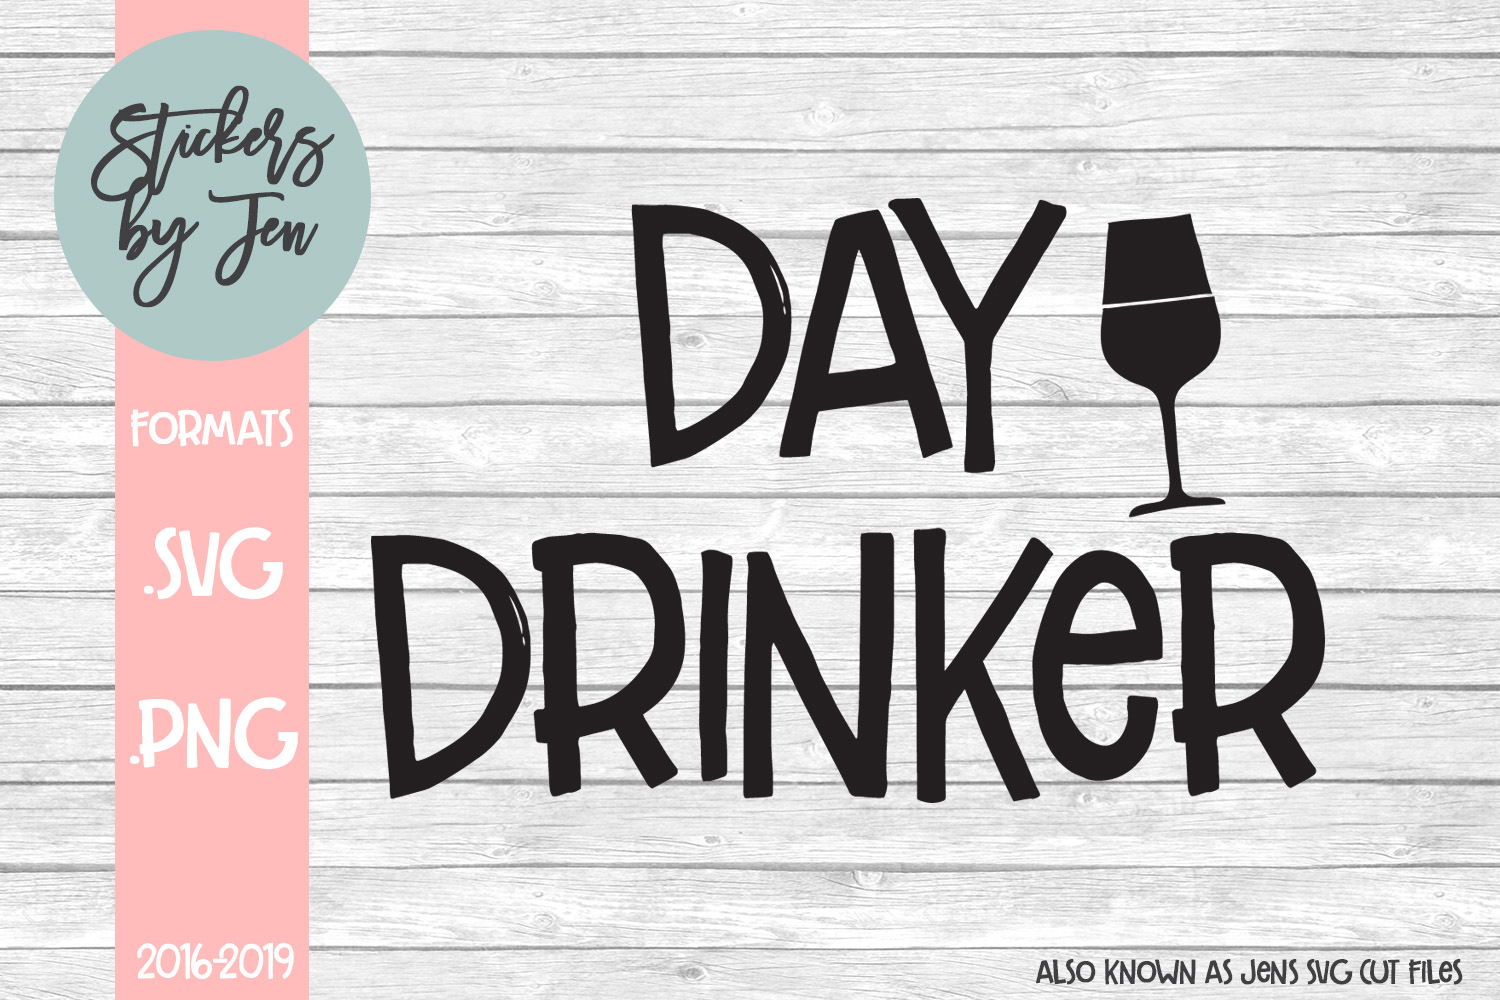 Download Free Day Drinker Graphic By Stickers By Jennifer Creative Fabrica for Cricut Explore, Silhouette and other cutting machines.